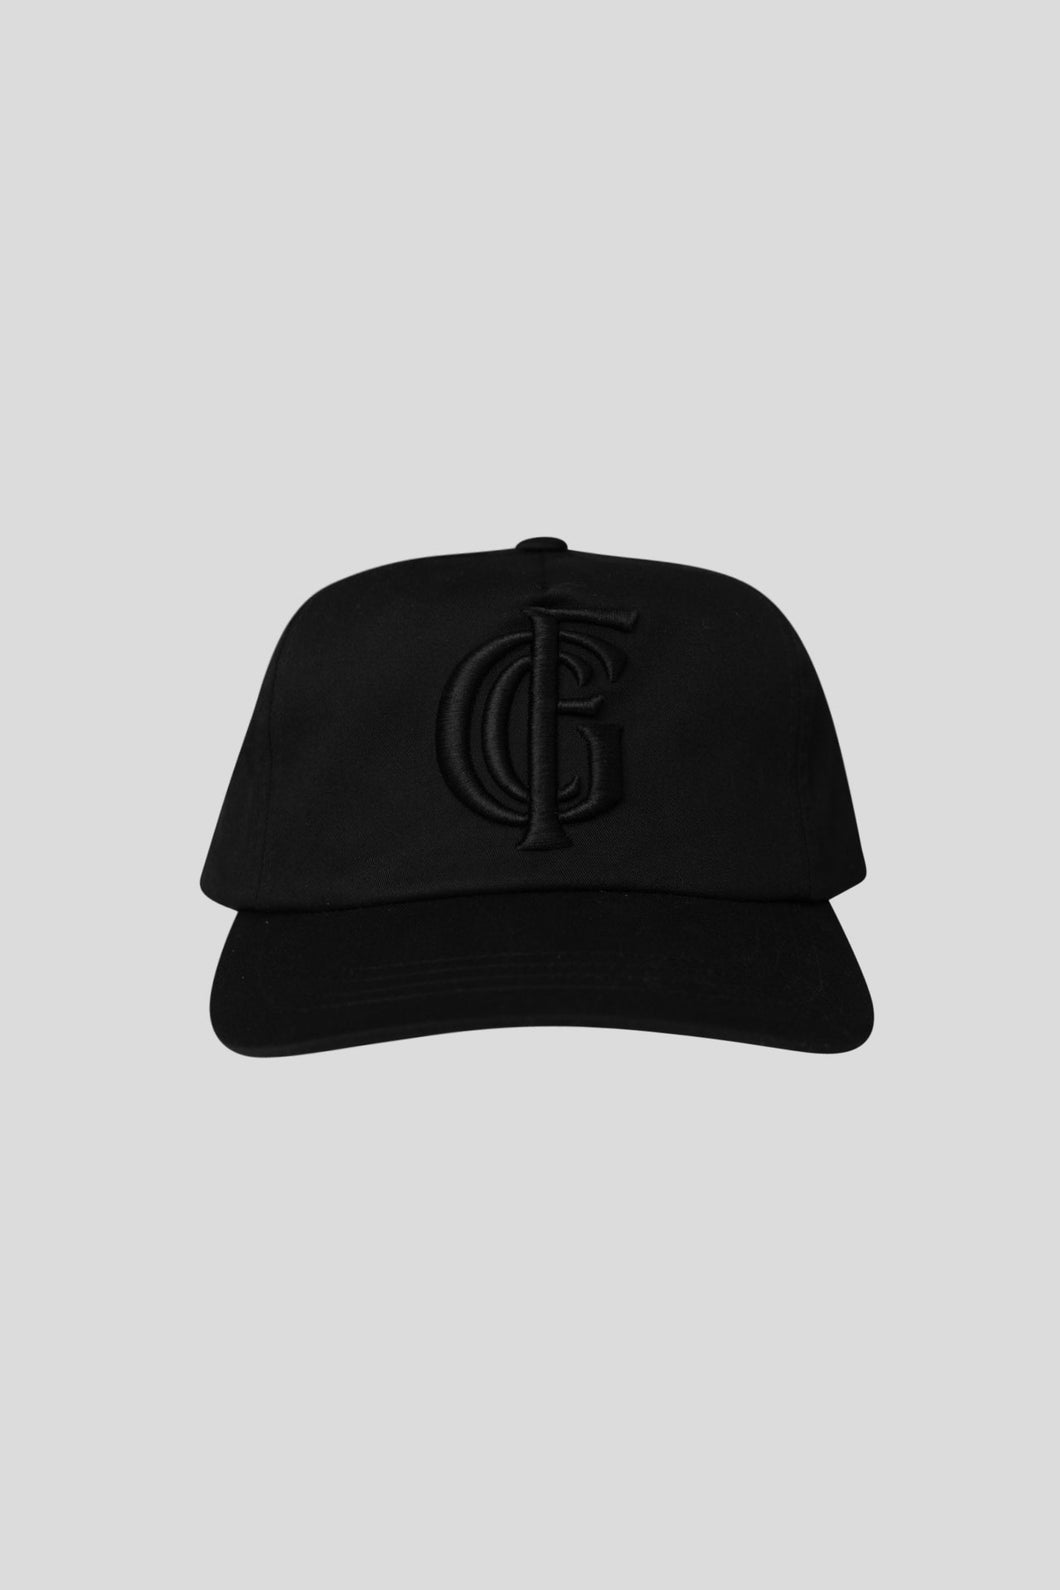 Monogram Hat - Black/Black